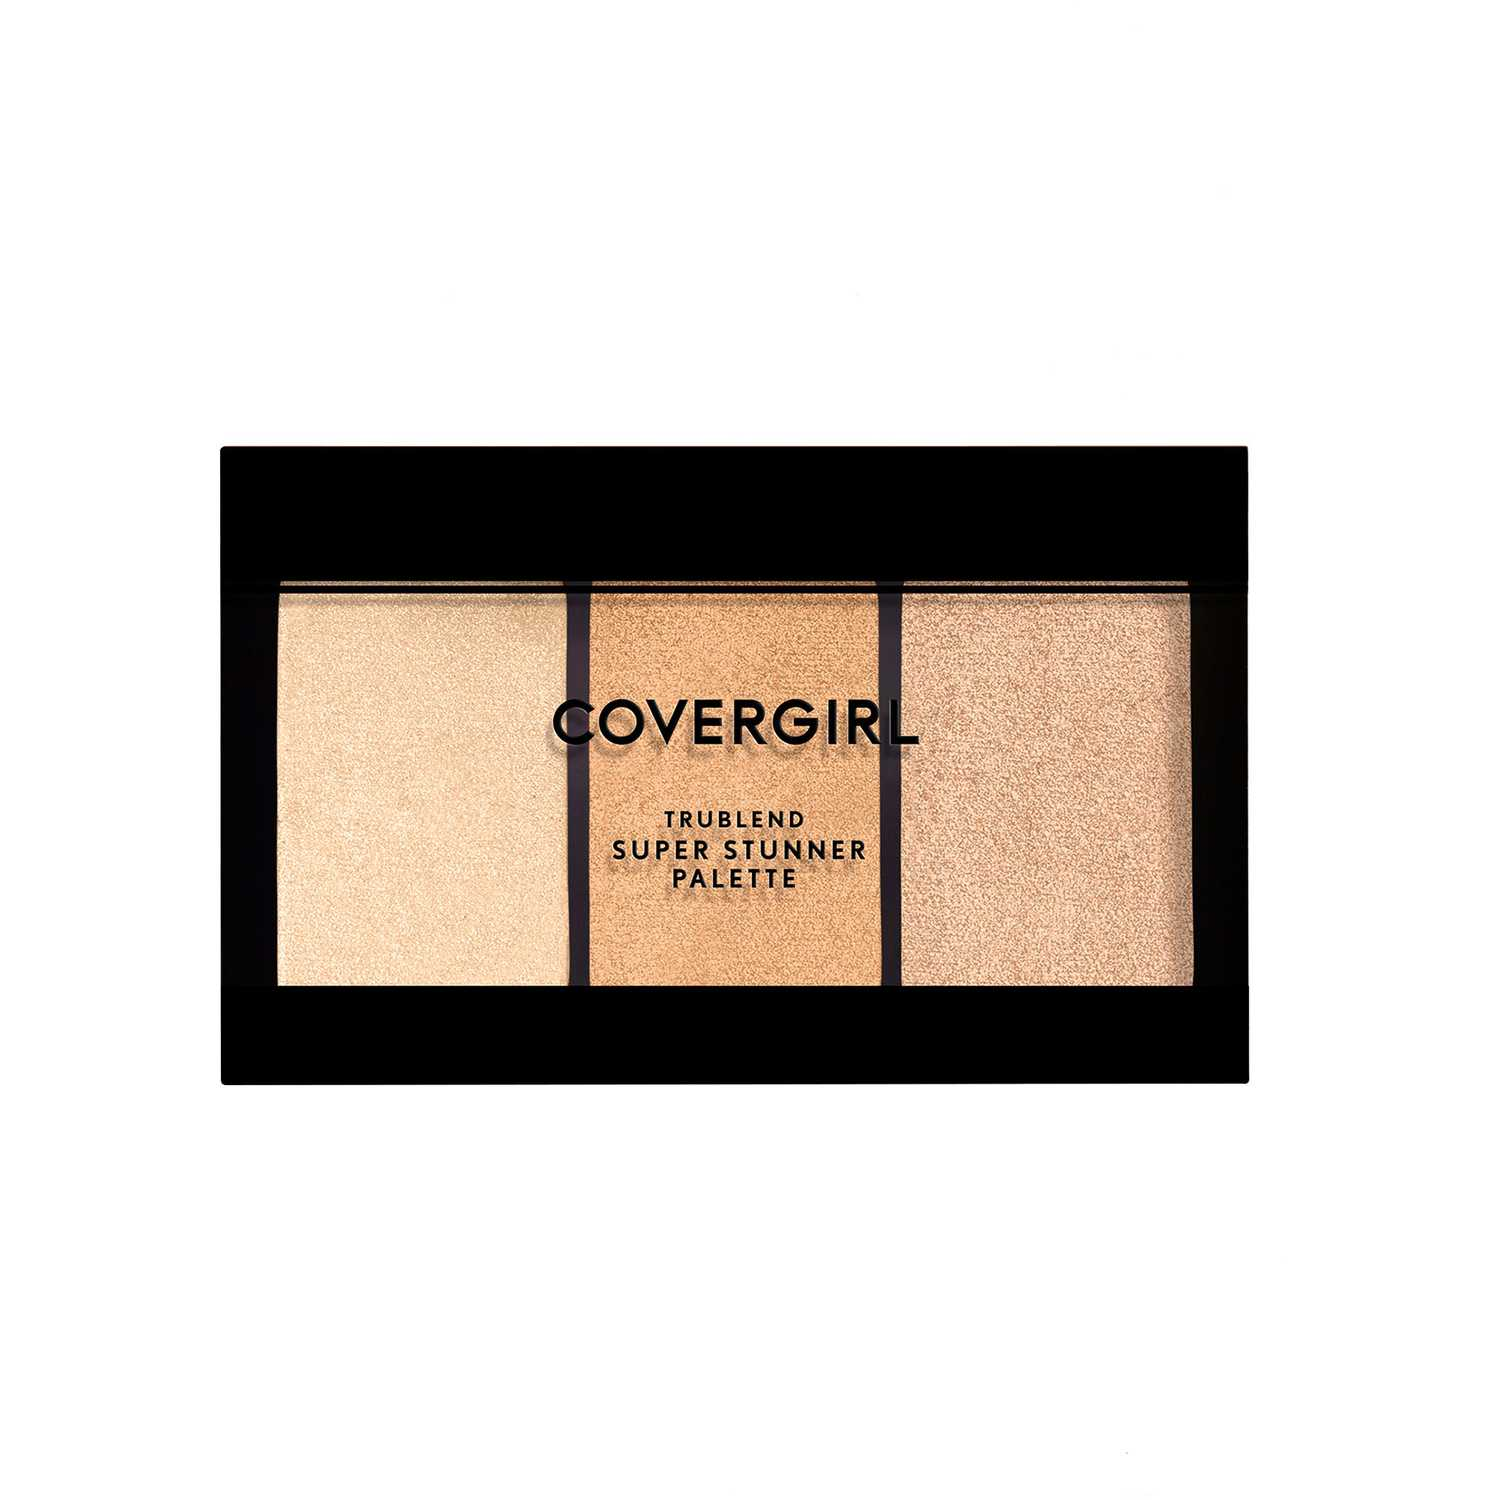 Iluminador  Covergirl Glowing Up trublend super stunner highlight palette